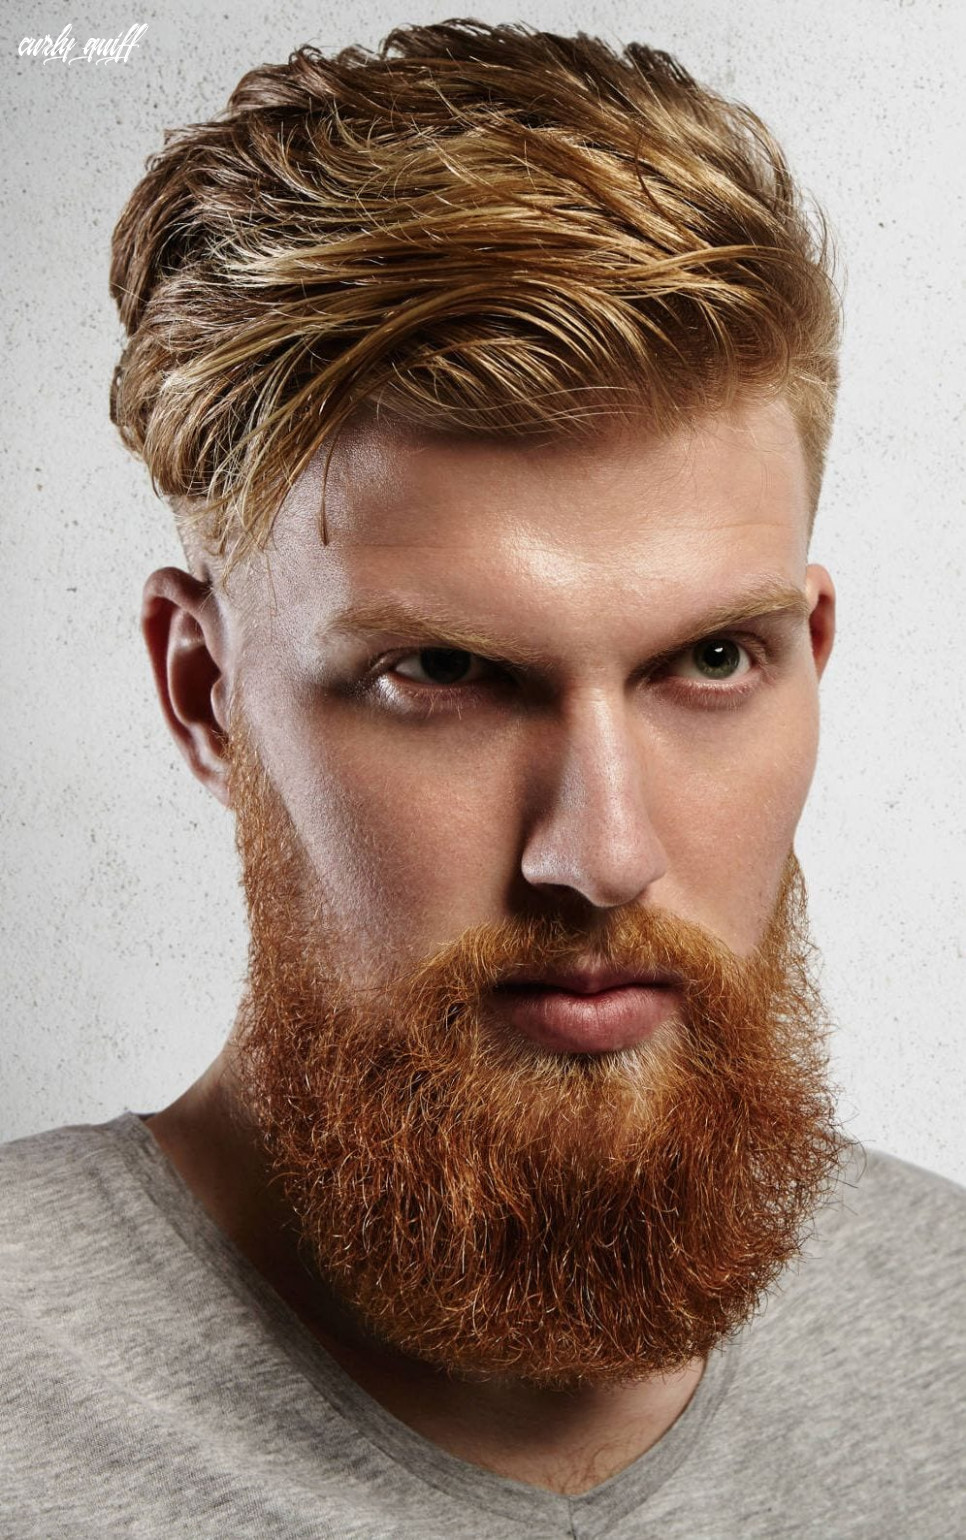 10 outstanding quiff hairstyle ideas – a comprehensive guide curly quiff